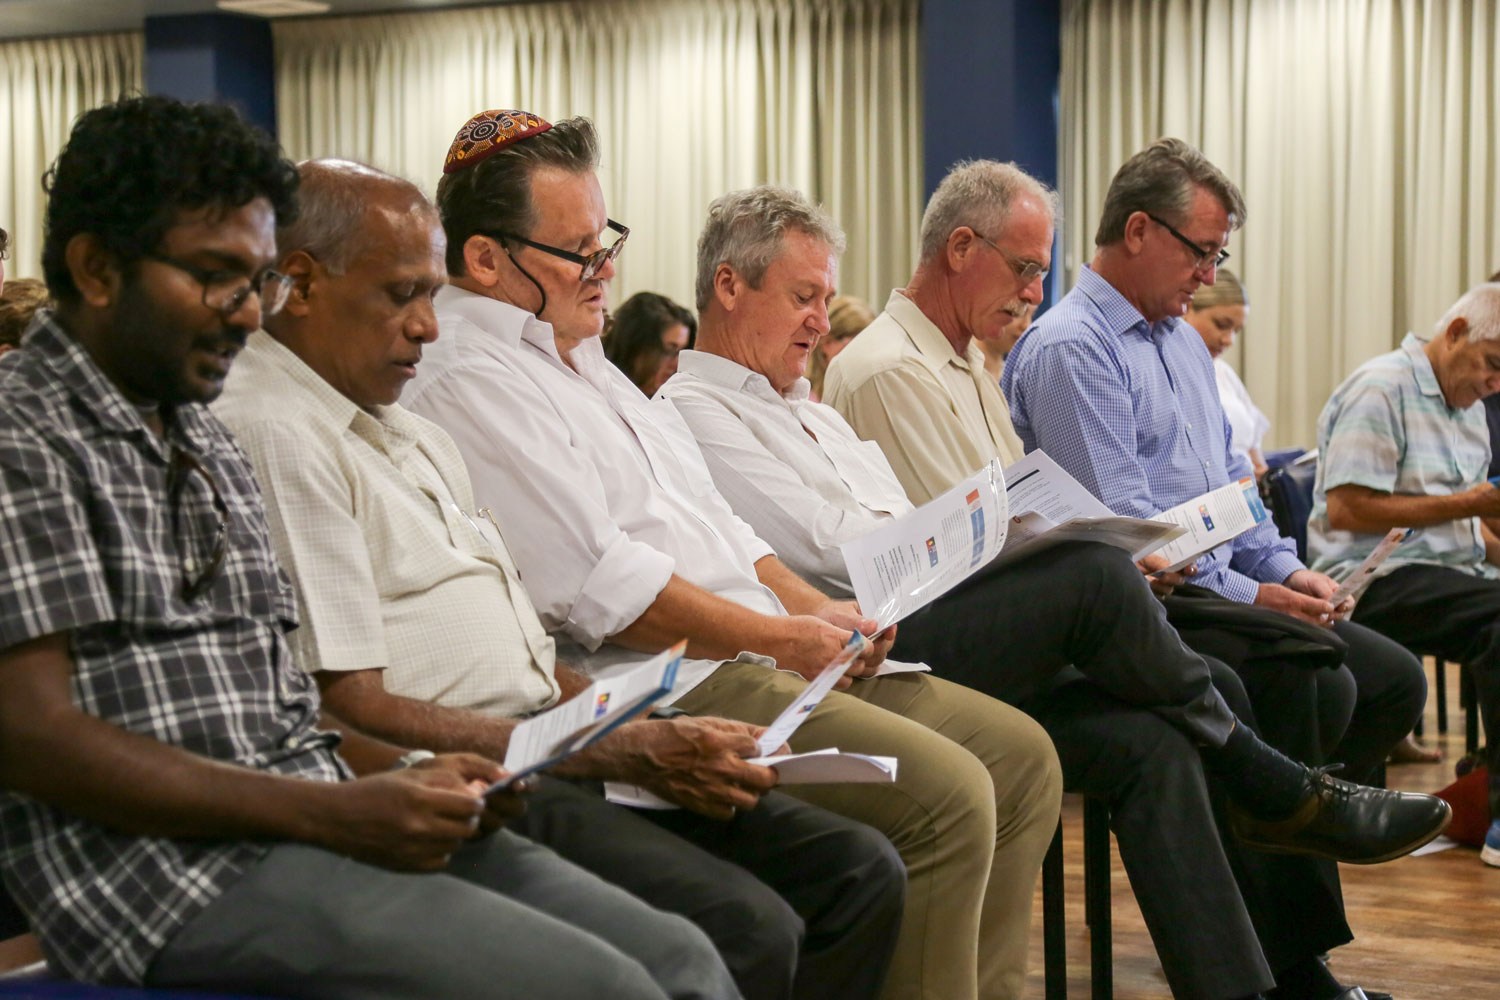 Six men sitting down reading from the program